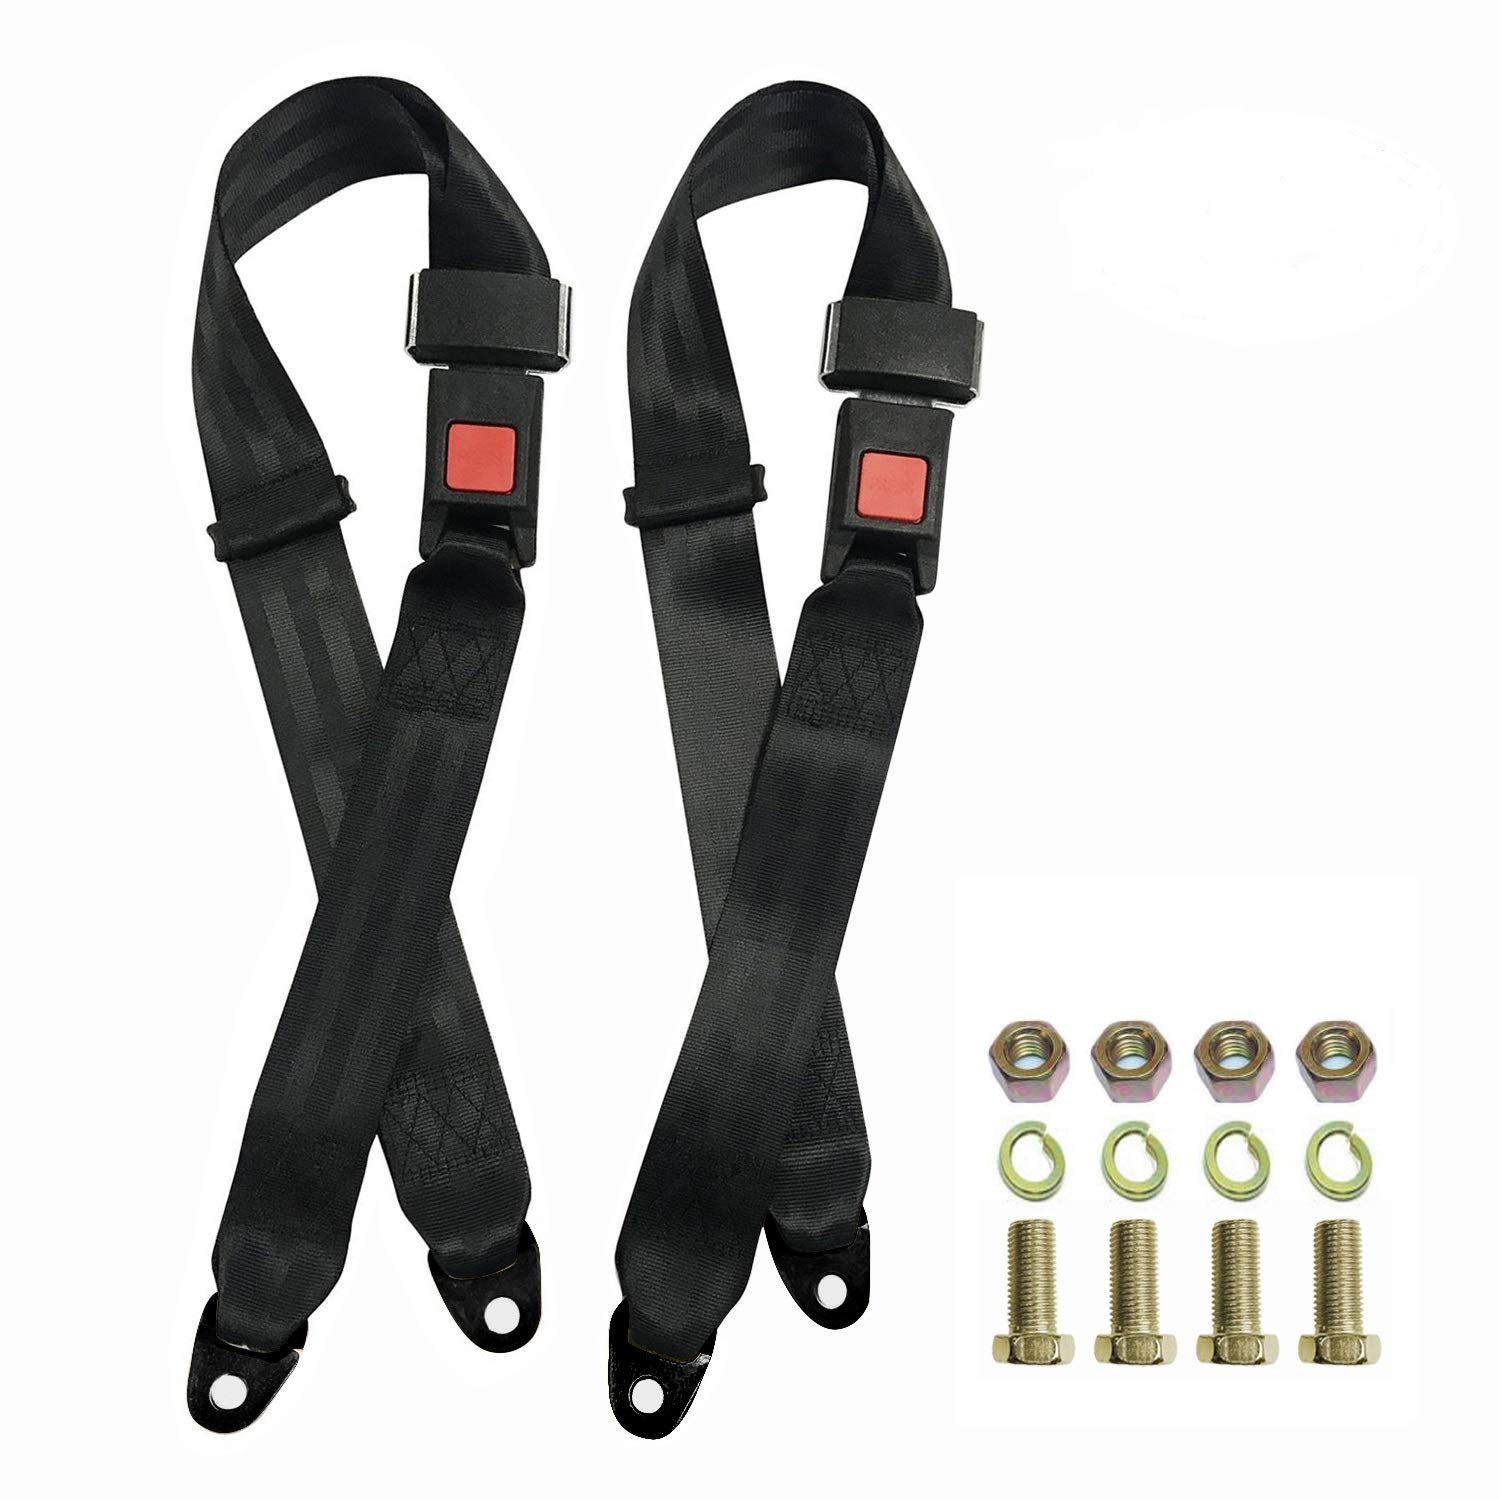 2 Pack Seat Safety Belt, Lap Durable Polyester Fabric Safety Belts Buckle Car Vehicle Truck Seat Belts,Suitable for UTV, Buggies,Club Golf Cart,Go Kart, Van, VR, Truck, Cars and Veh 2 Point Adjustable by Synbenet